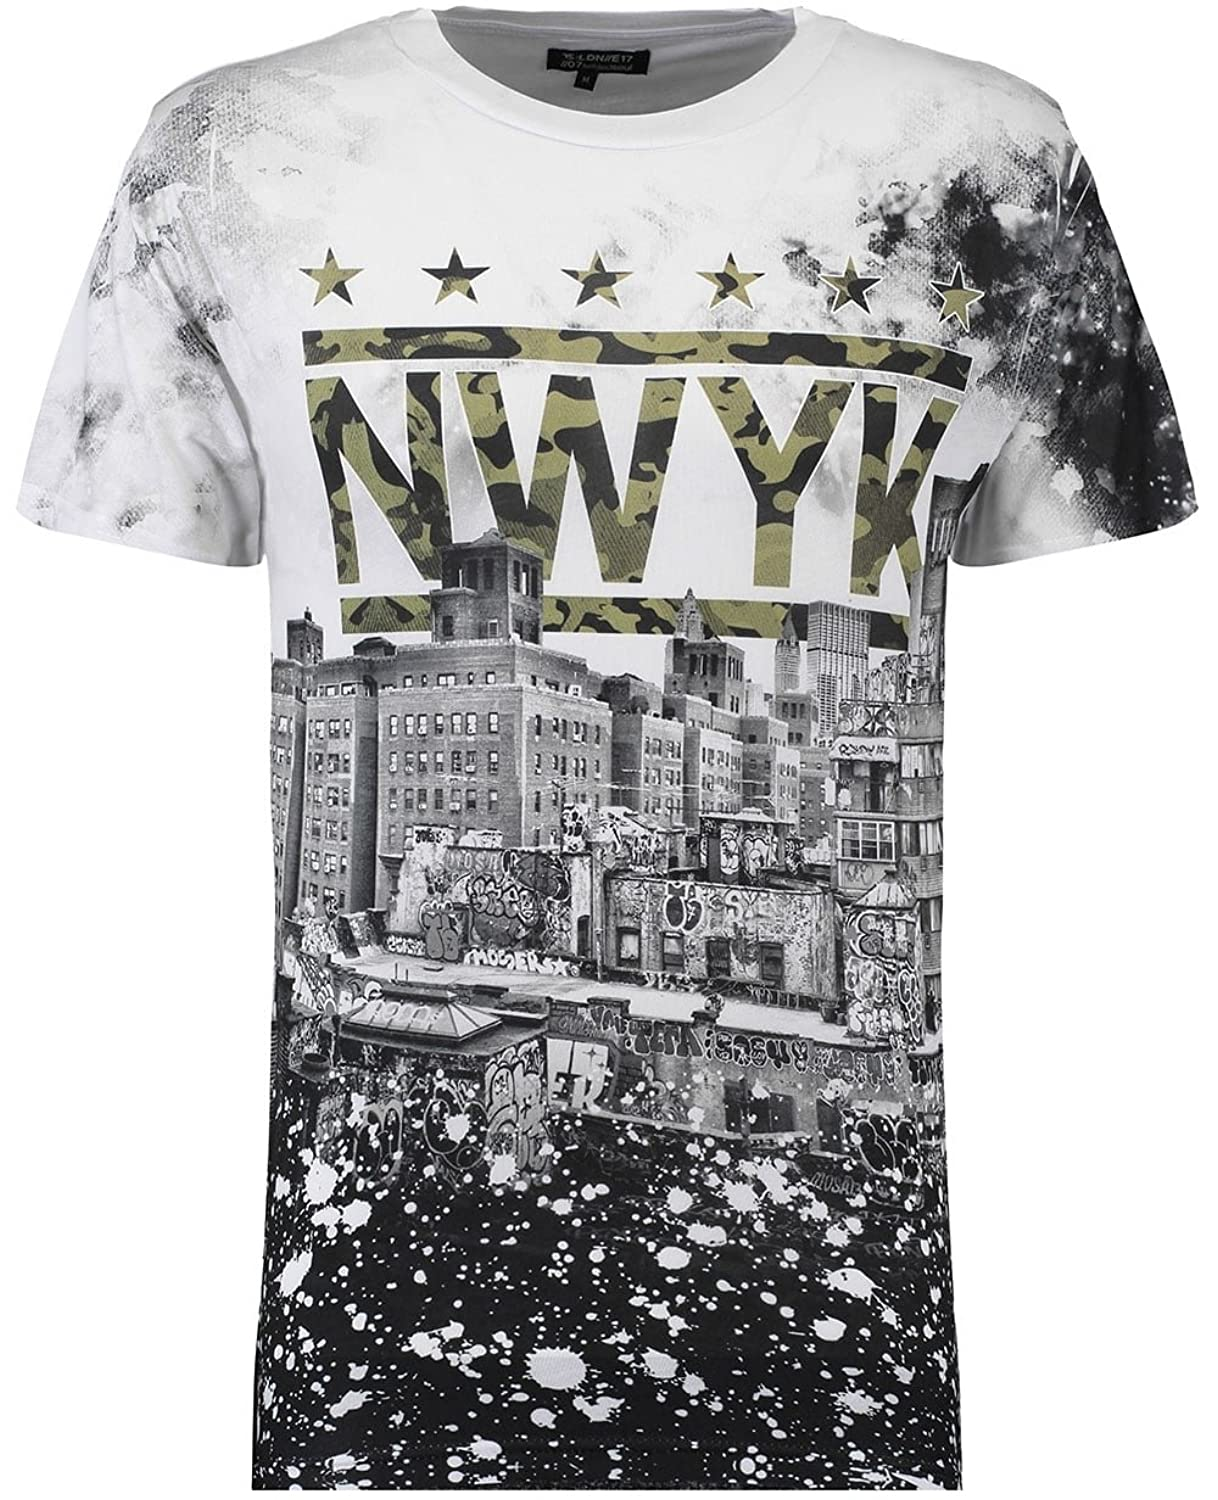 Twisted Soul Mens Camouflage Nwyk Sky Print Short Sleeve Round Neck T-Shirt Tee